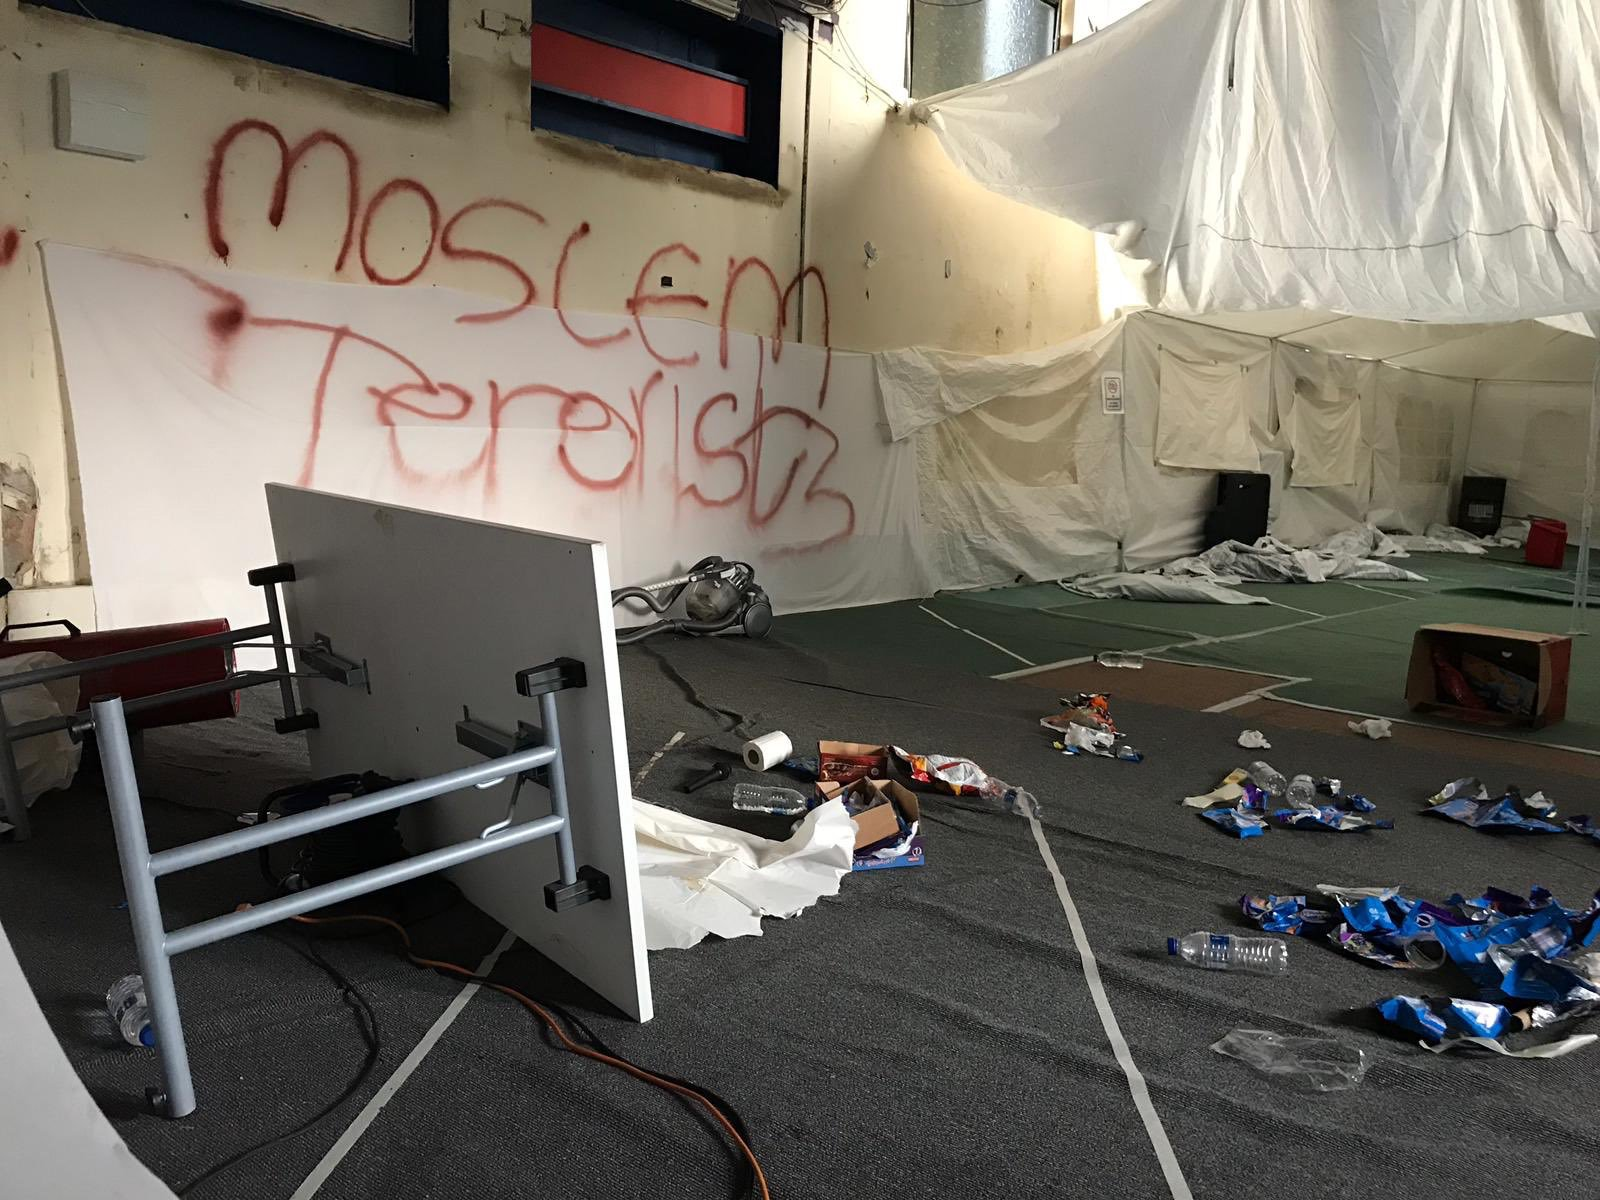 Centre used by young Muslims trashed with graffiti Picture: @dsahad metrograb https://twitter.com/dsahad/status/1088832406839353345